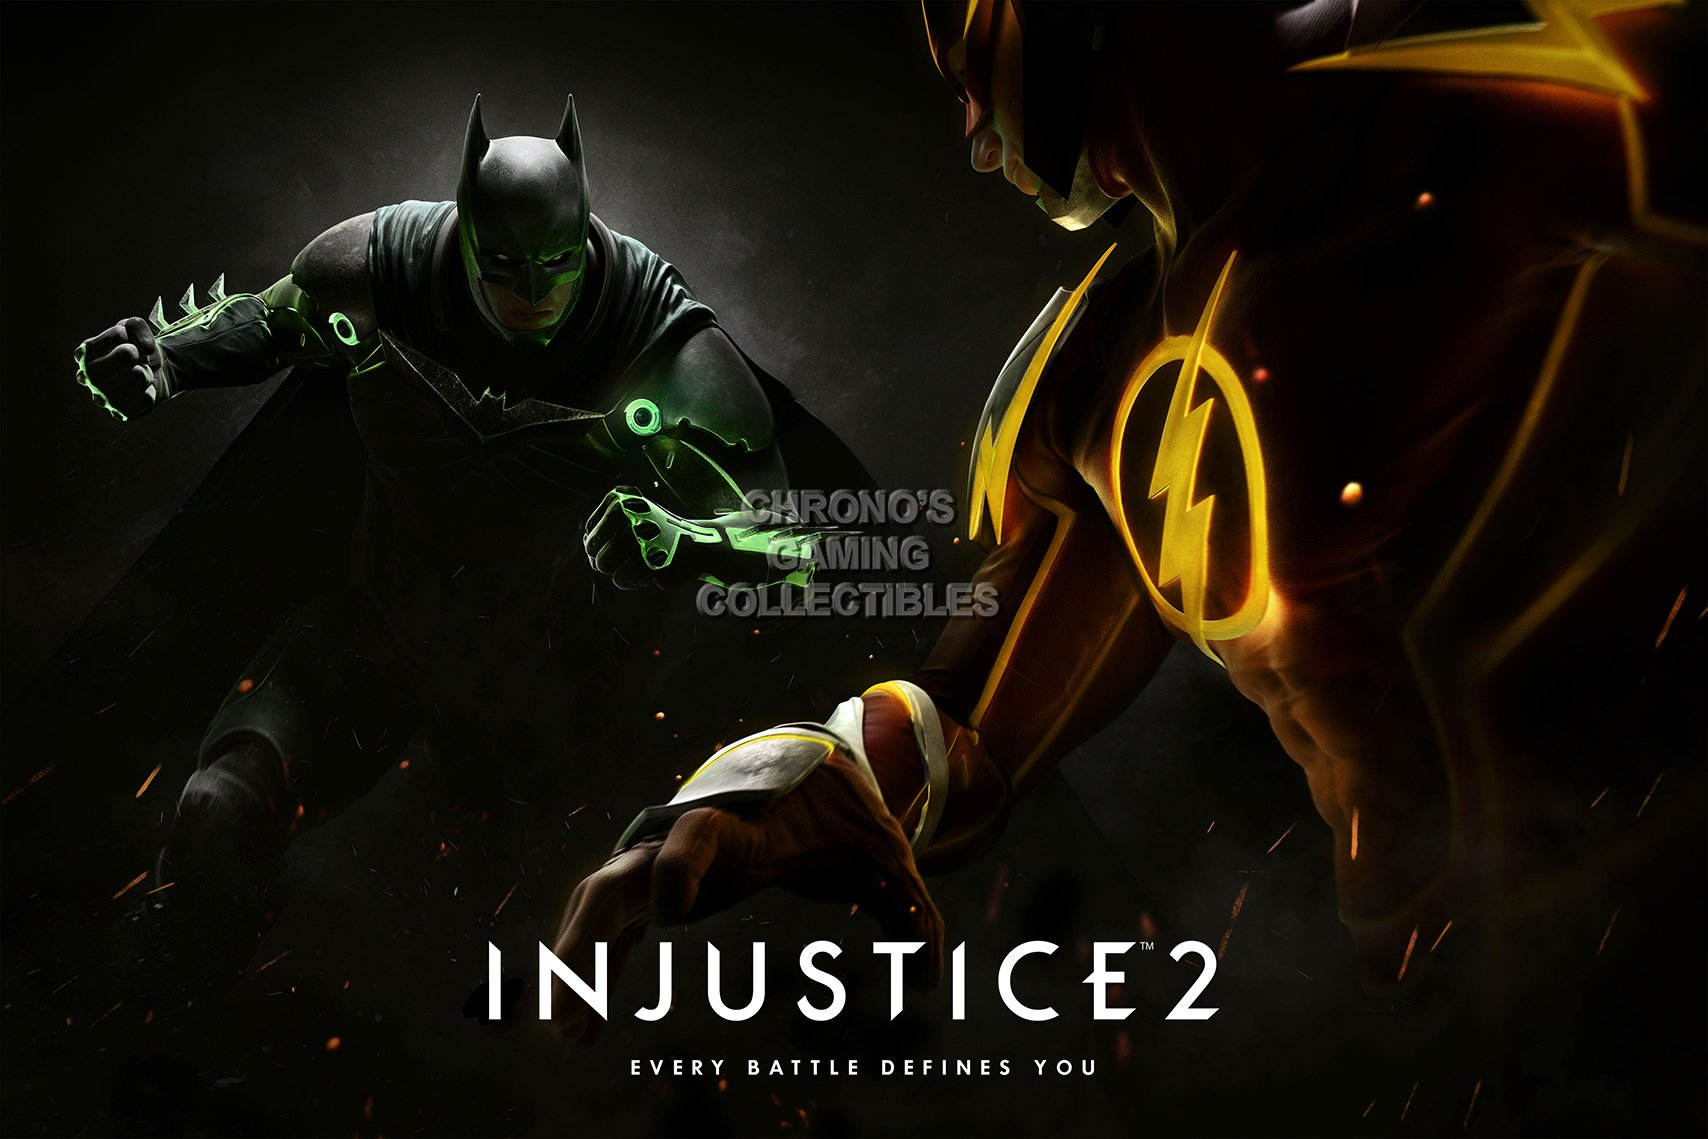 CGC enorme – Póster Injustice 2 PS4 Xbox One – ext457: Amazon.es ...